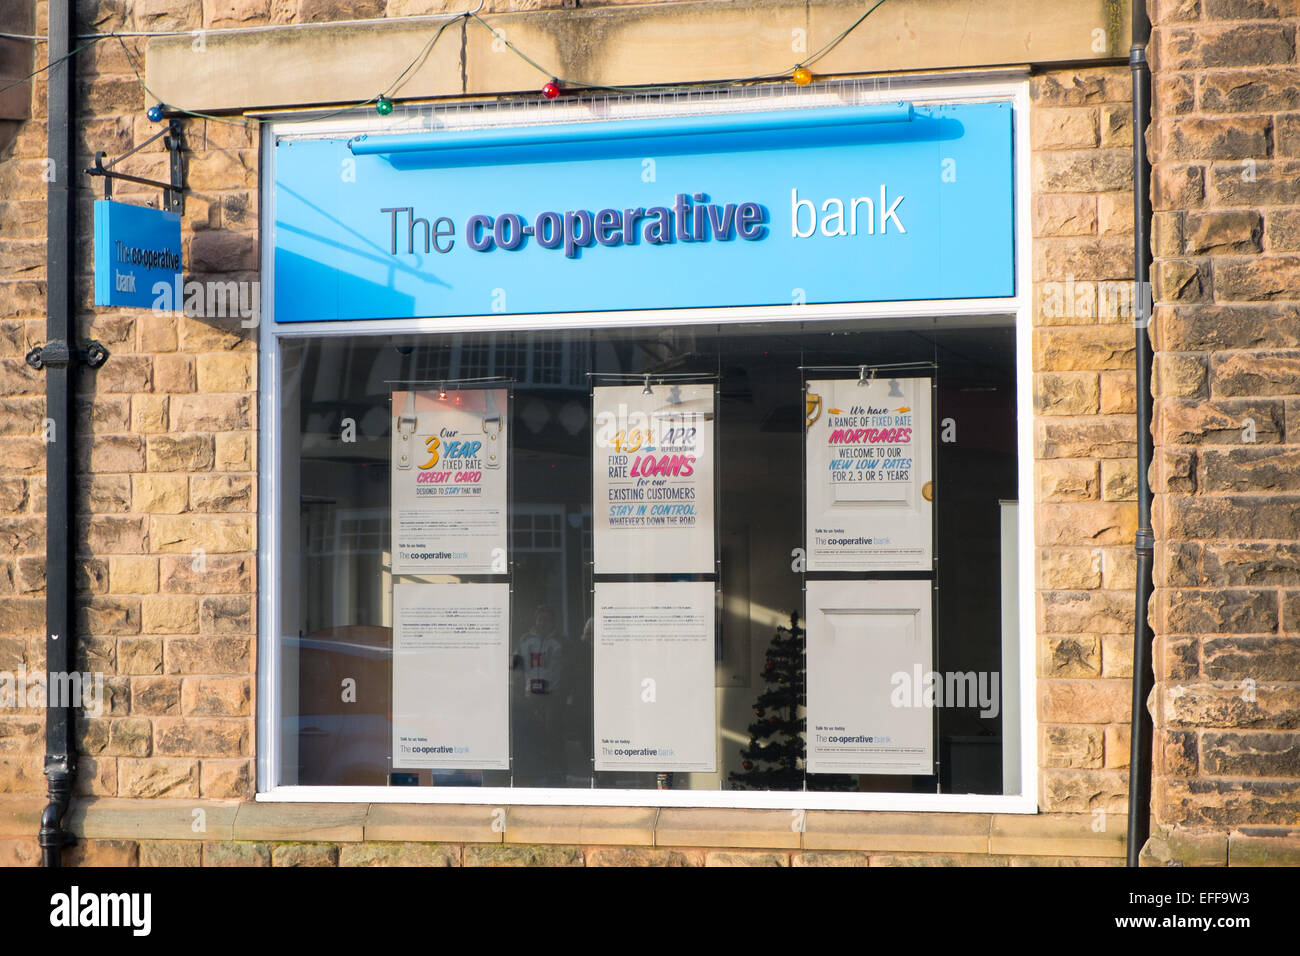 branch of the co-operative bank in Matlock,Derbyshire,England - Stock Image